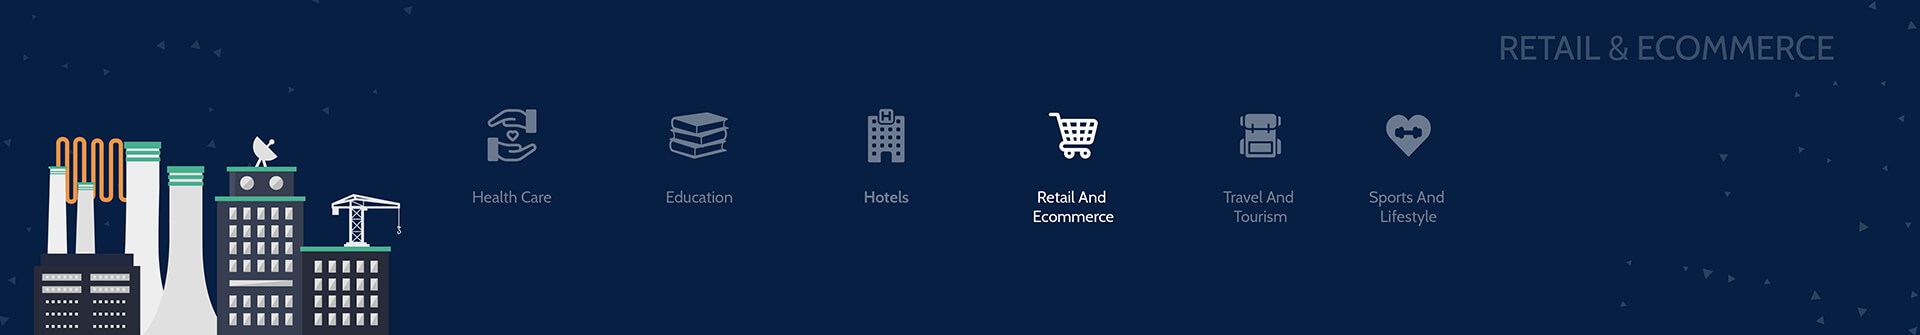 Retail and E-Commerce Industry